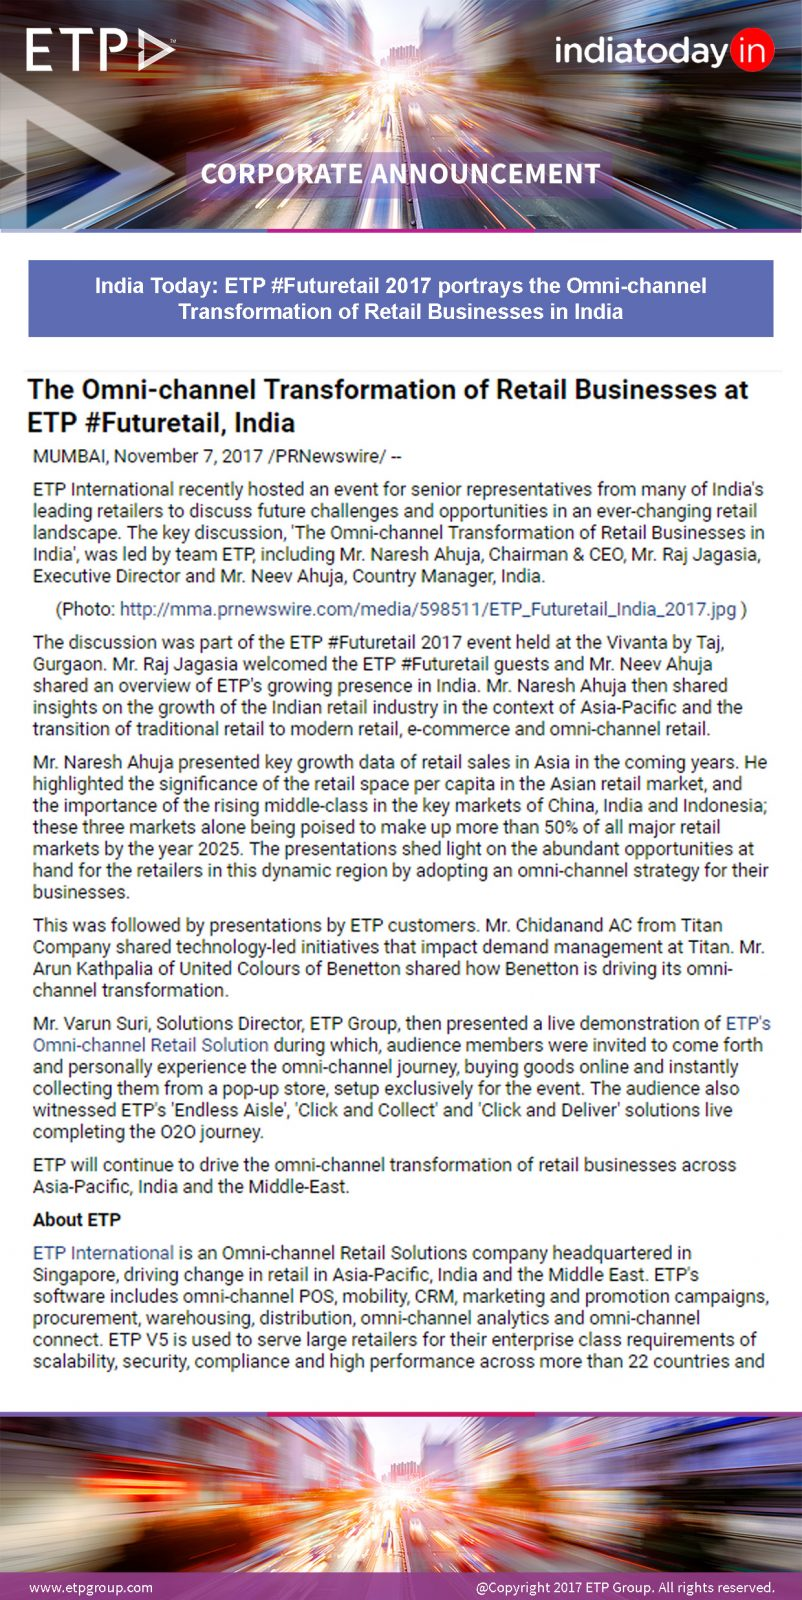 etp in-indiatoday